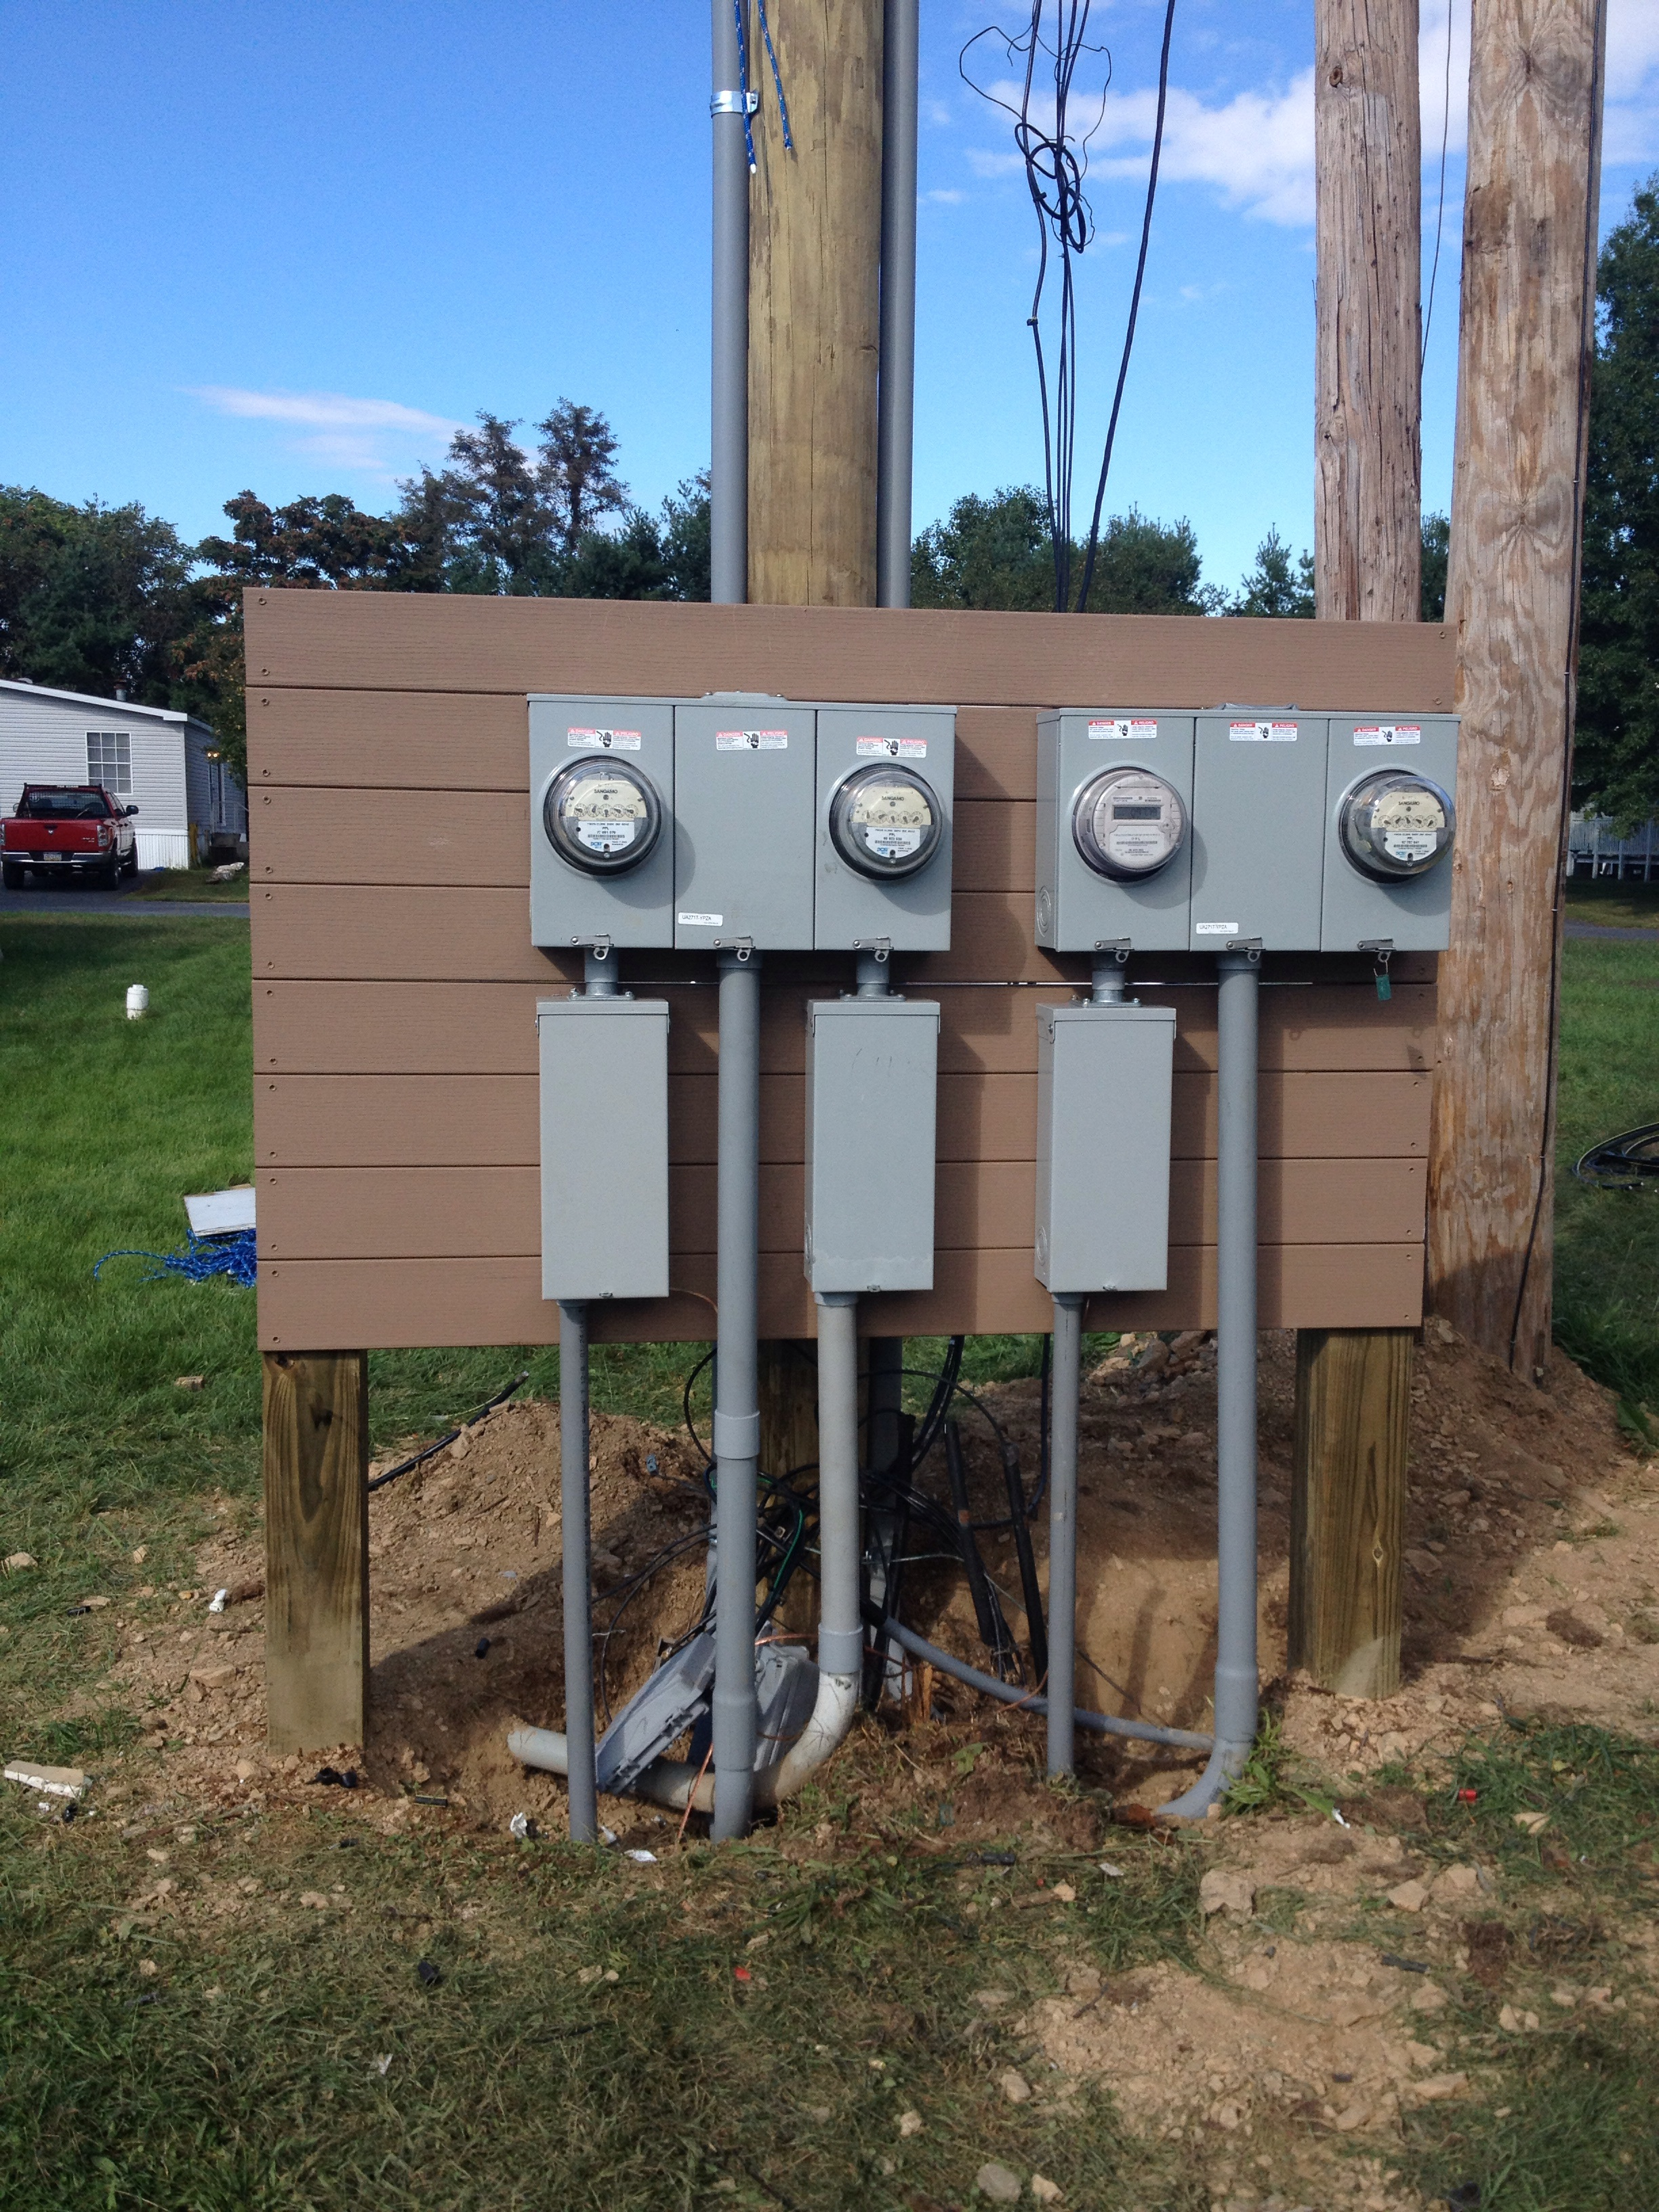 Meter installations and setups